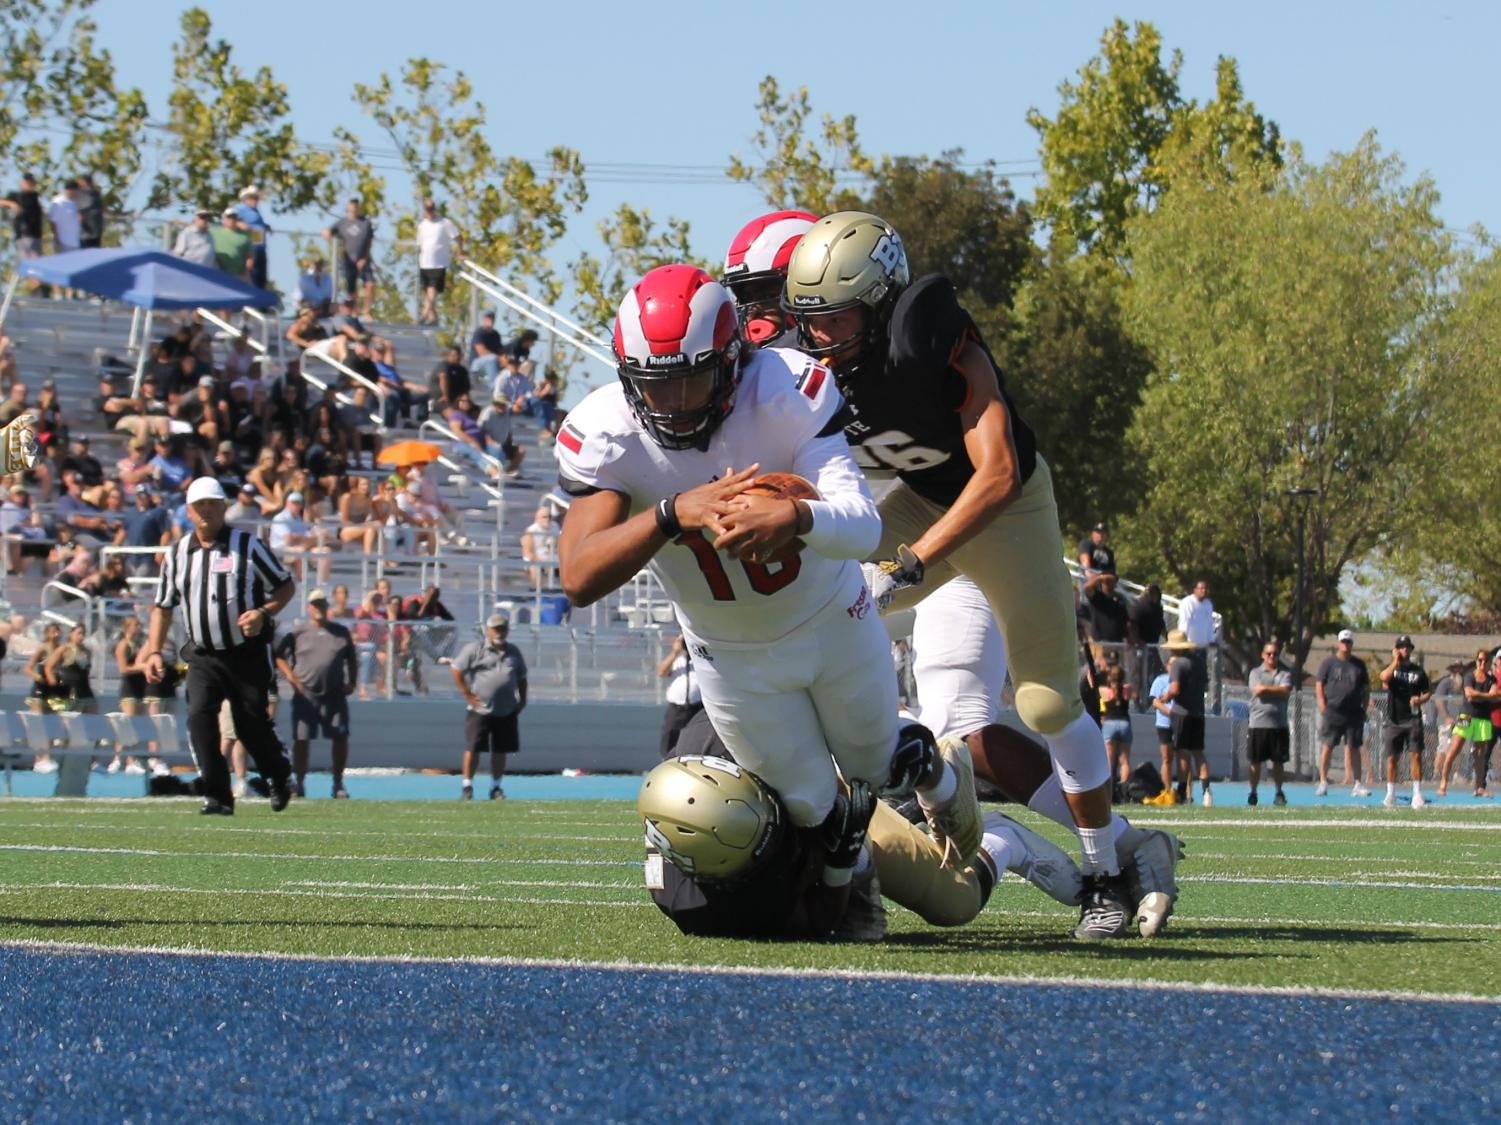 Sophomore quarterback Jonah Johnson dives into the end zone during the Rams thrilling 13-10 win over the Butte College Roadrunners on Sept. 21, 2019.